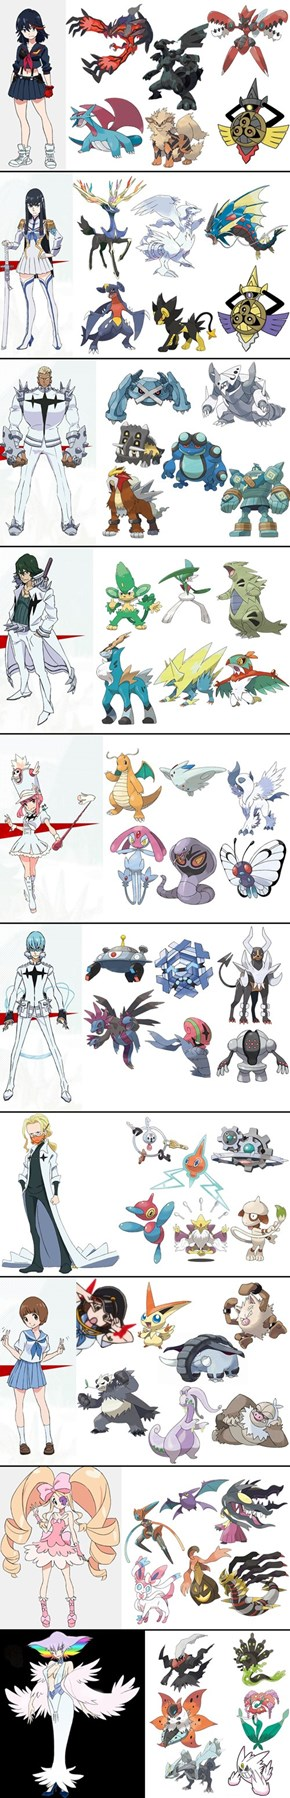 If Kill la Kill Characters Were Pokémon Trainers